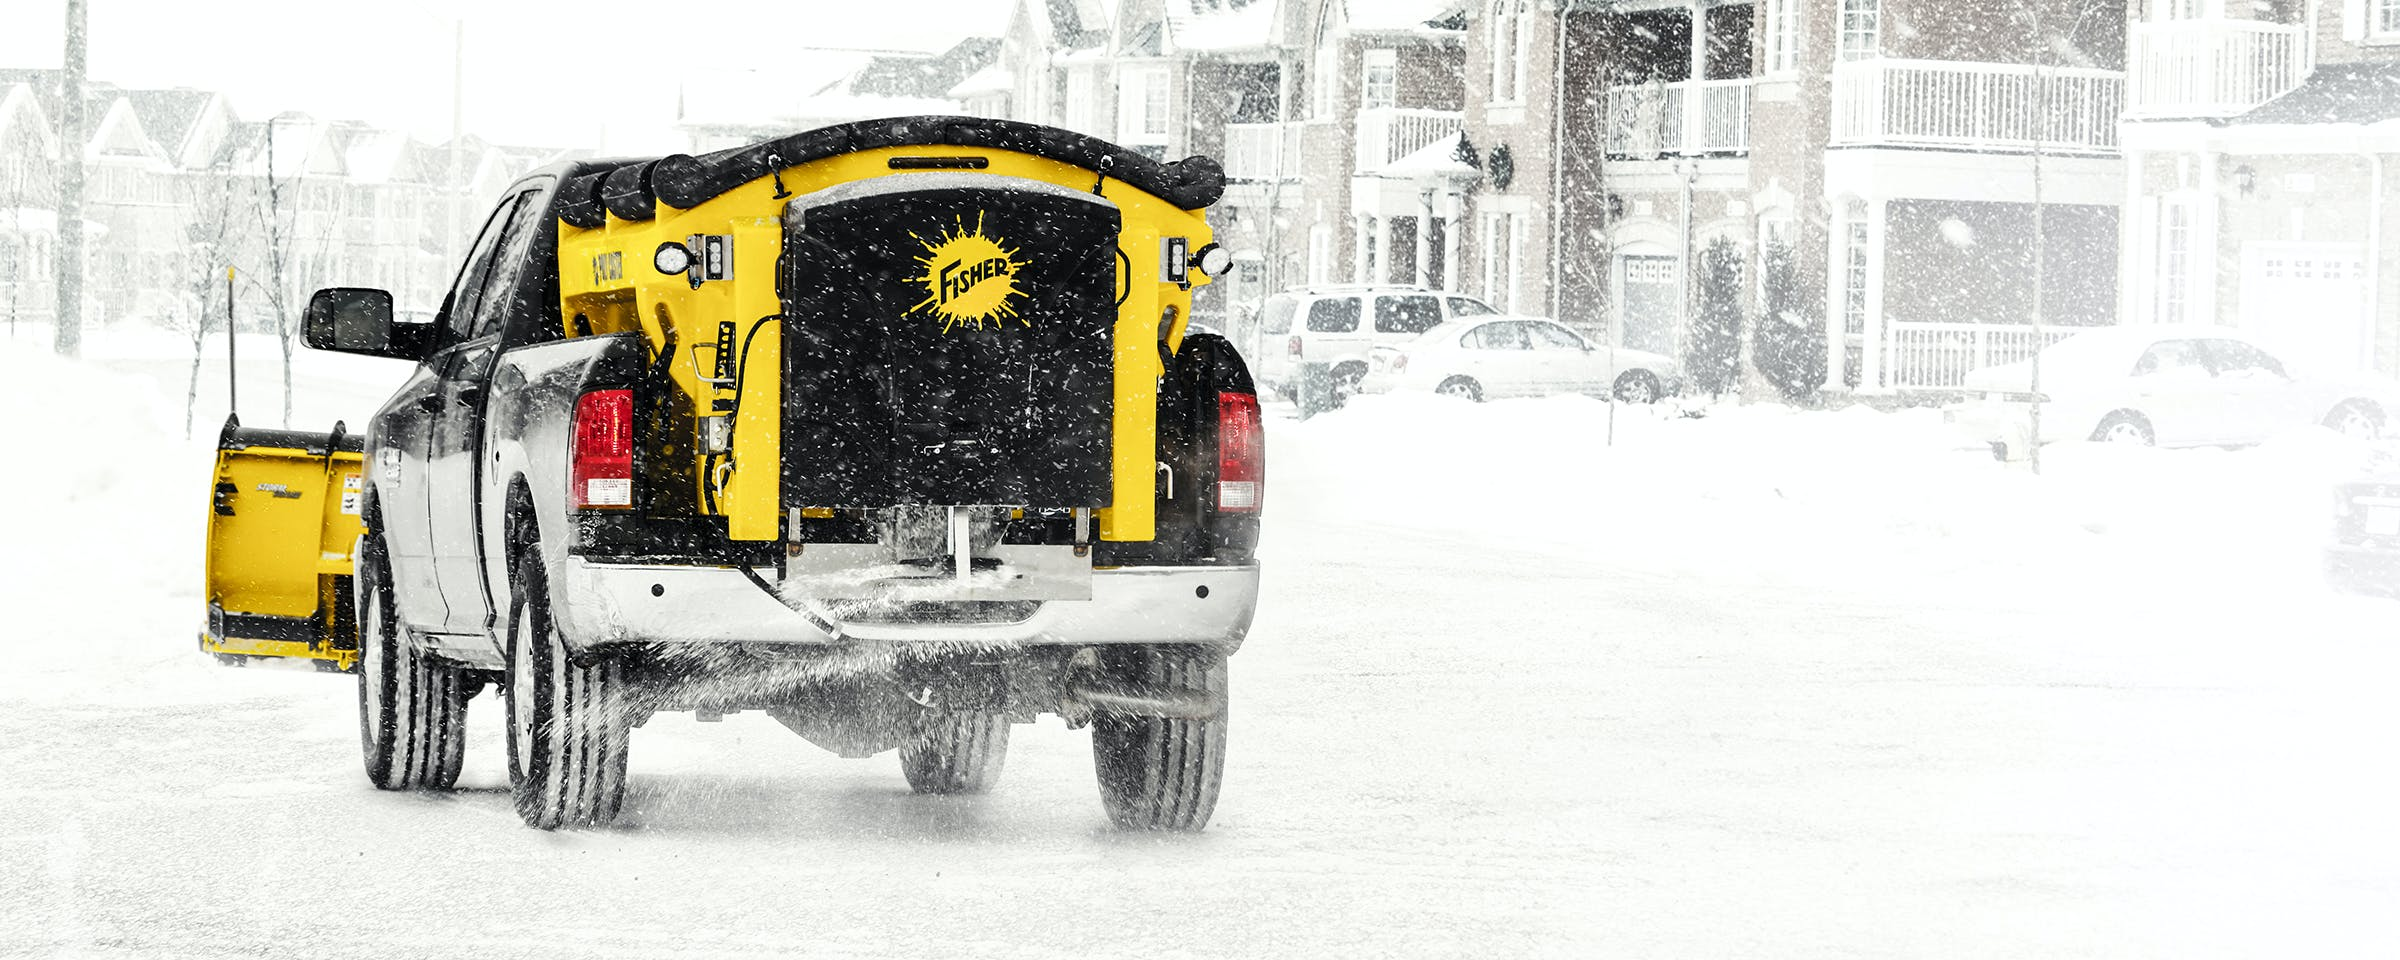 Ice control demands different equipment and FISHER has all the equipment you need to take on Mother Nature. FISHER offers large stainless steel and poly hopper spreaders, tailgate spreaders, and spreaders designed specifically for UTVs.